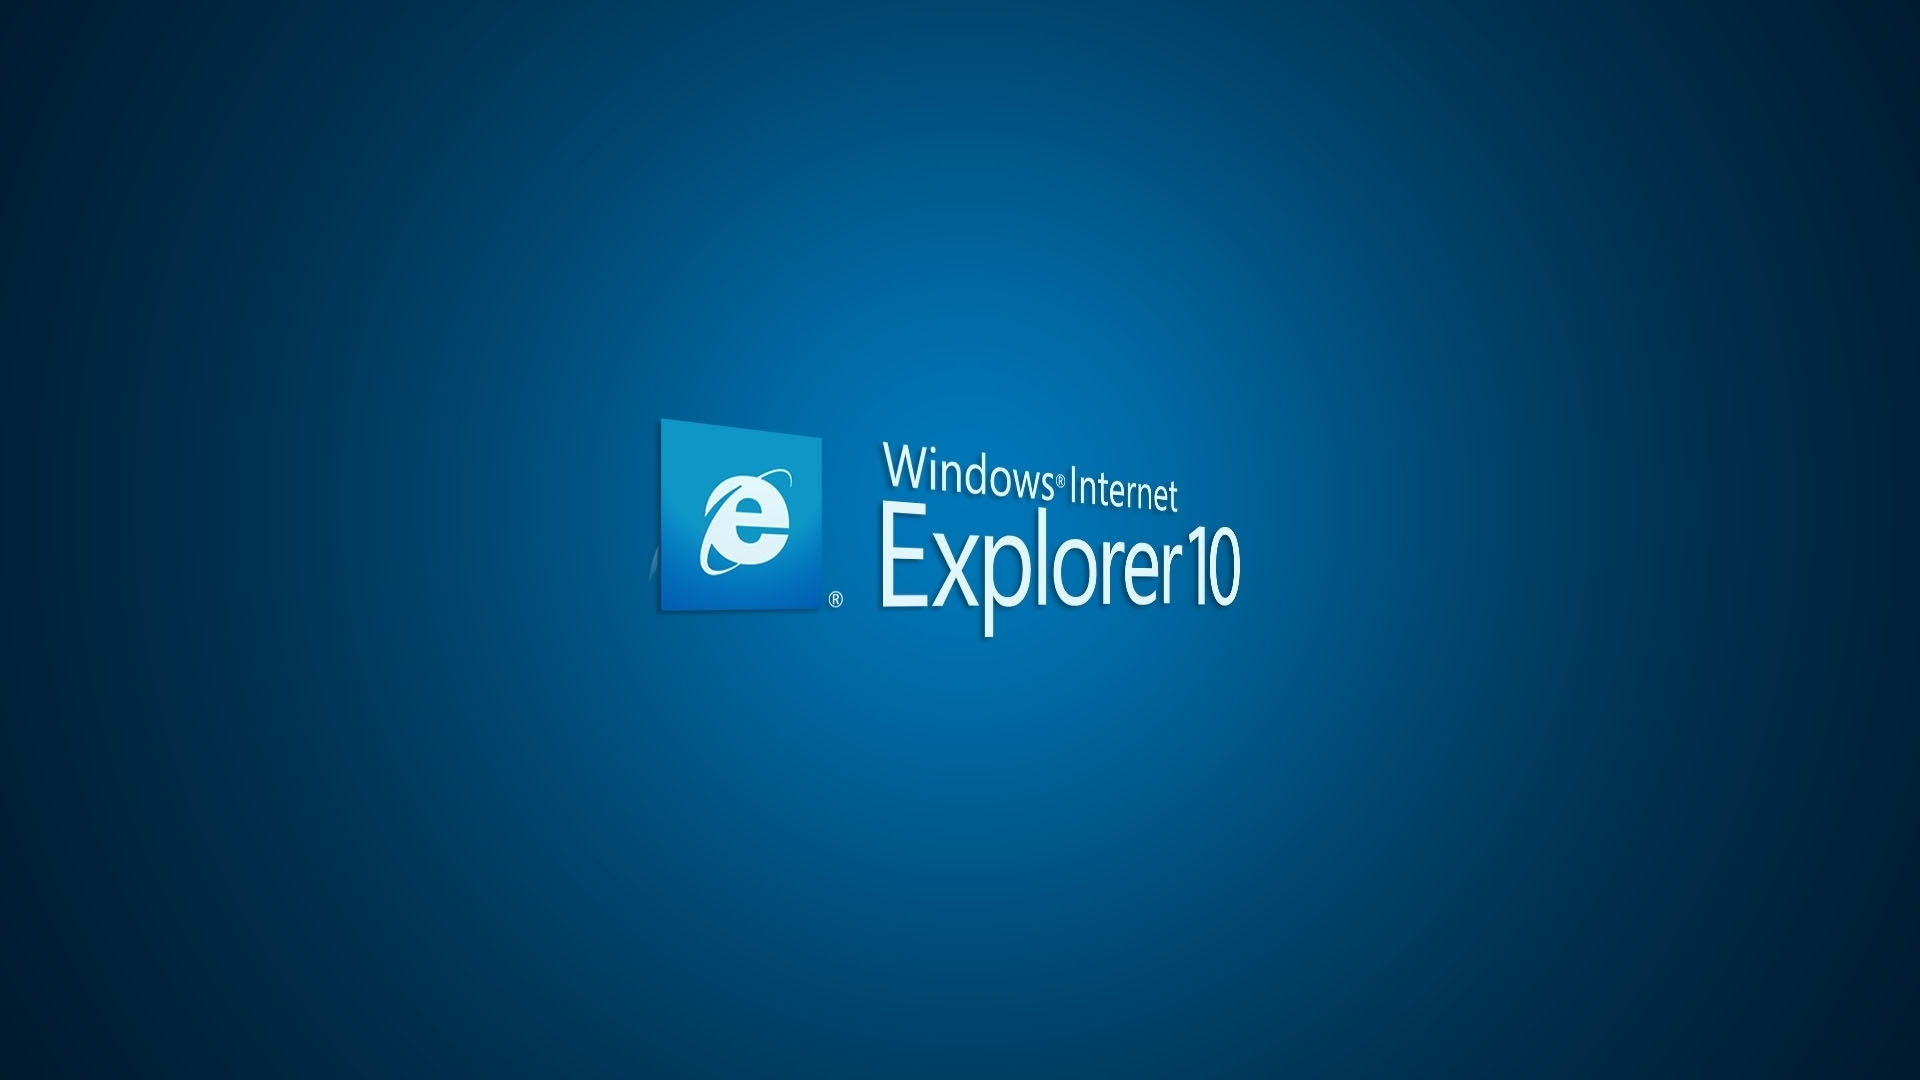 Microsoft Windows Internet Explorer 10   High Definition Wallpapers 1920x1080